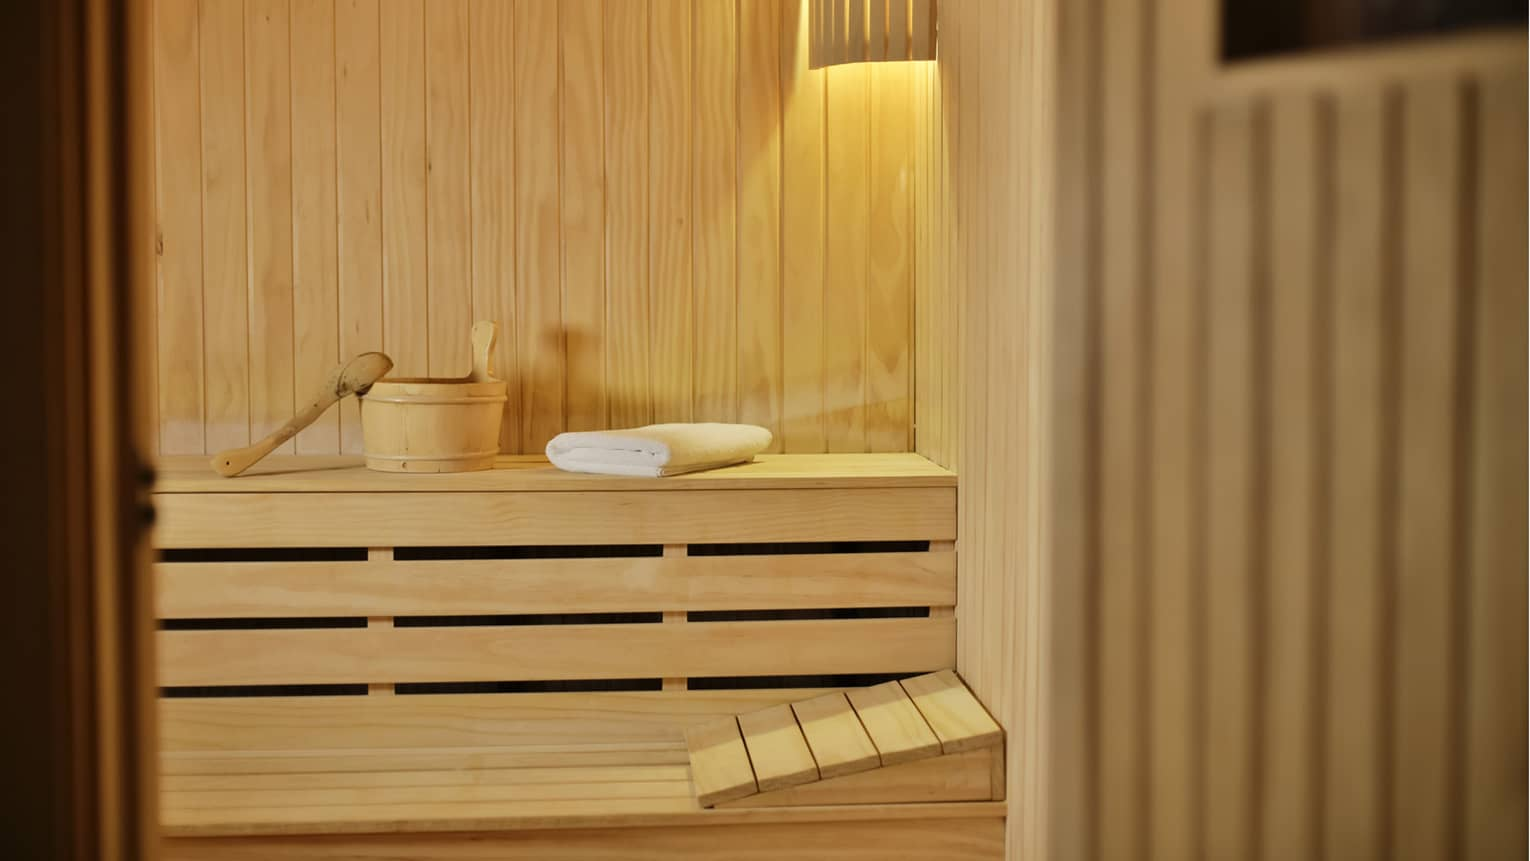 Wood basket and folded towel on bench in spa sauna steam room